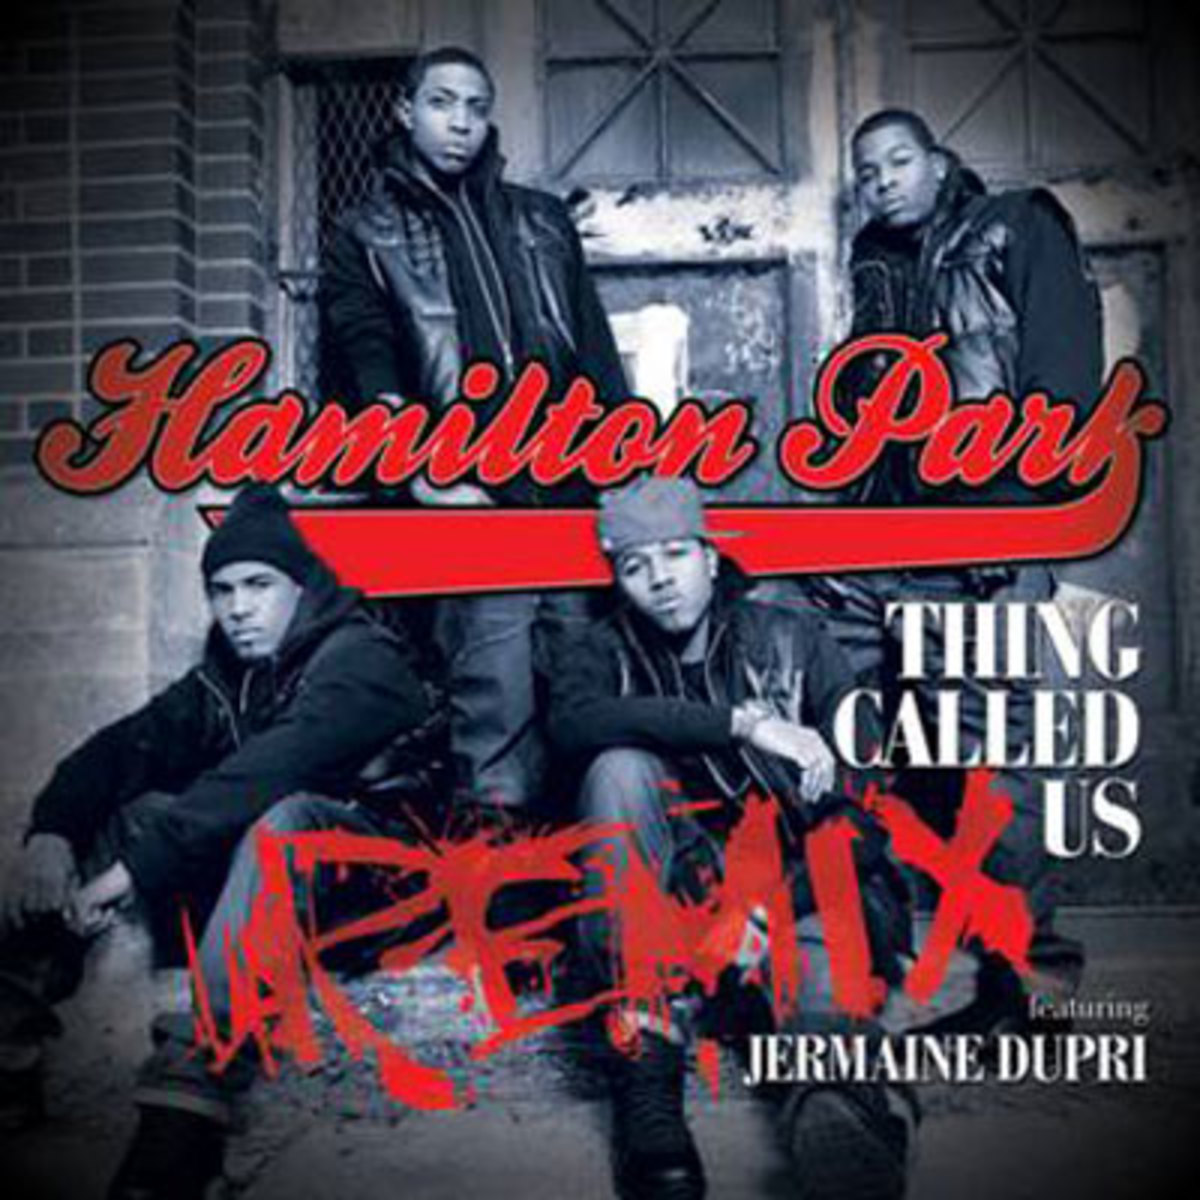 hamiltonpark-thingcalledusrmx.jpg